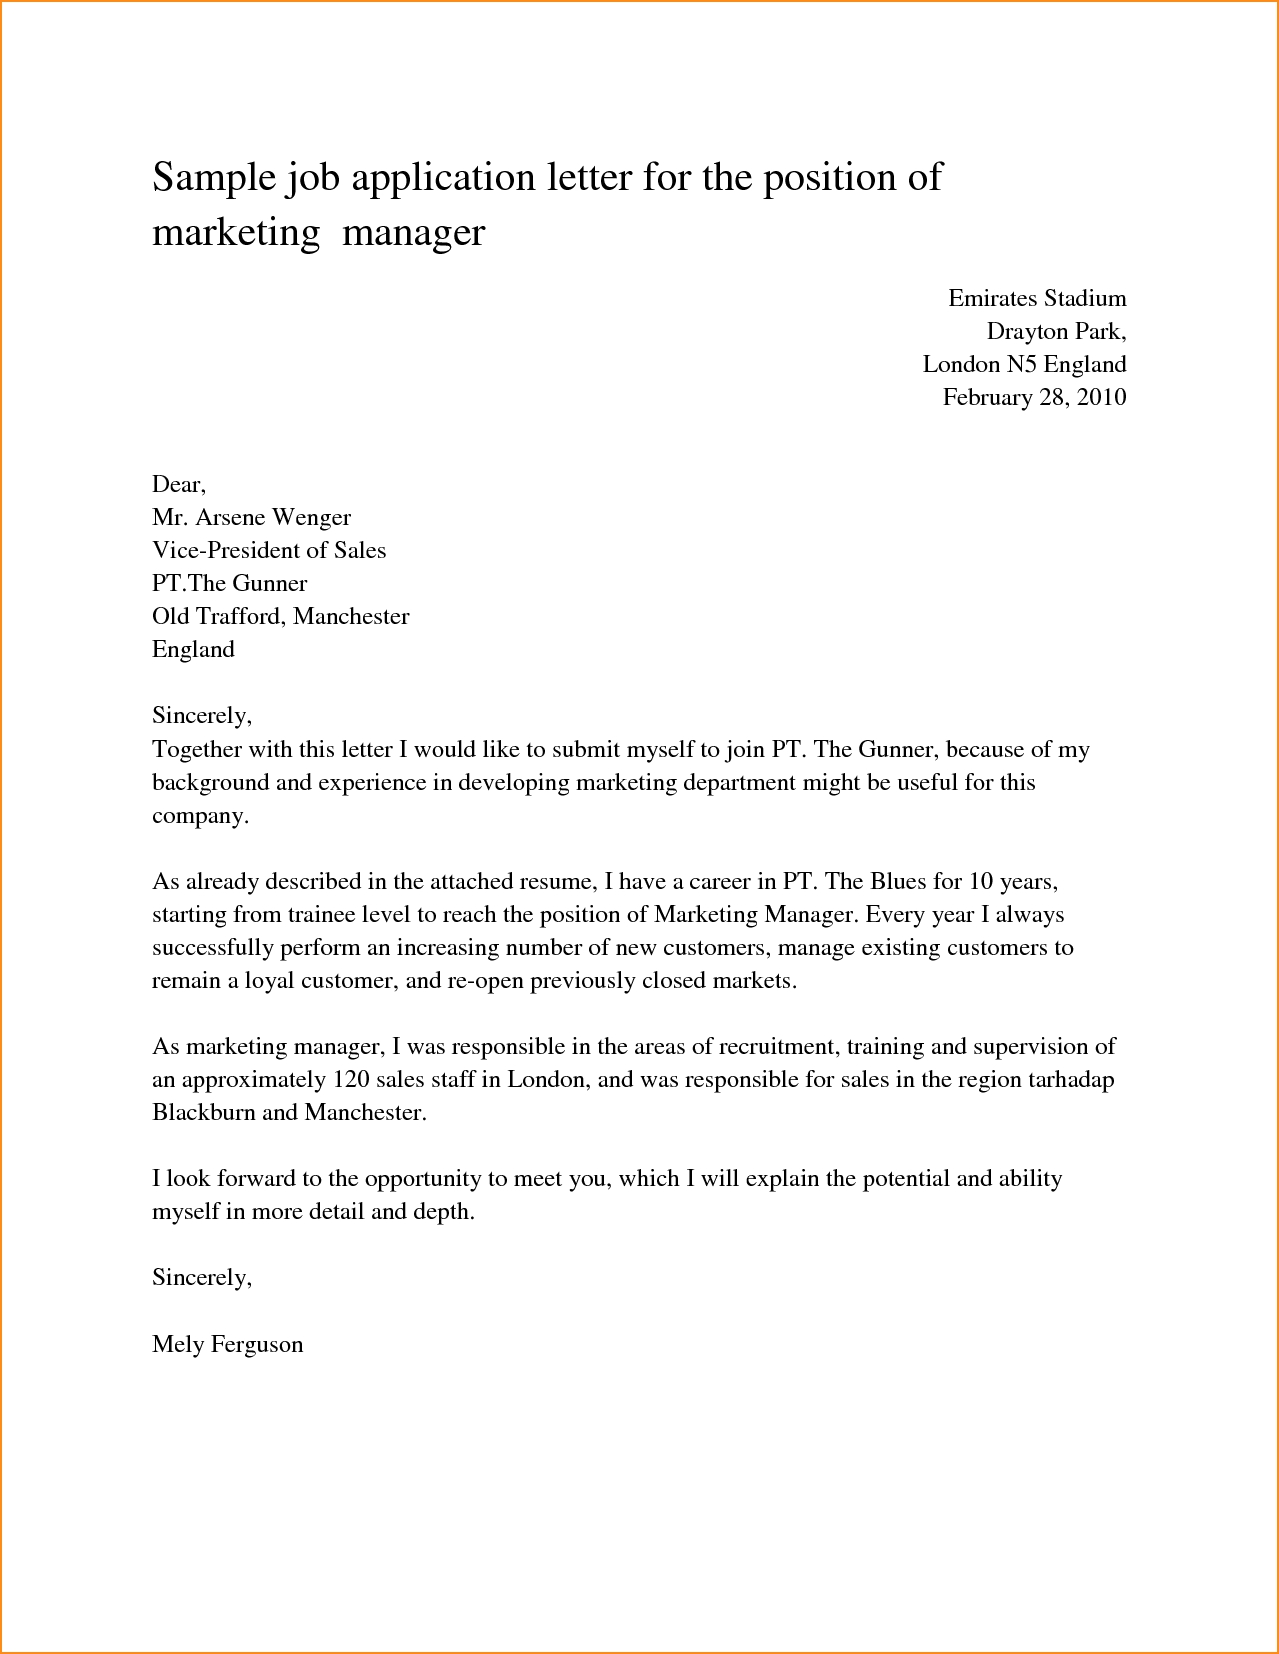 Sample Job Application Letter For The Position Marketing Manager within Job Application Letter Format 23486